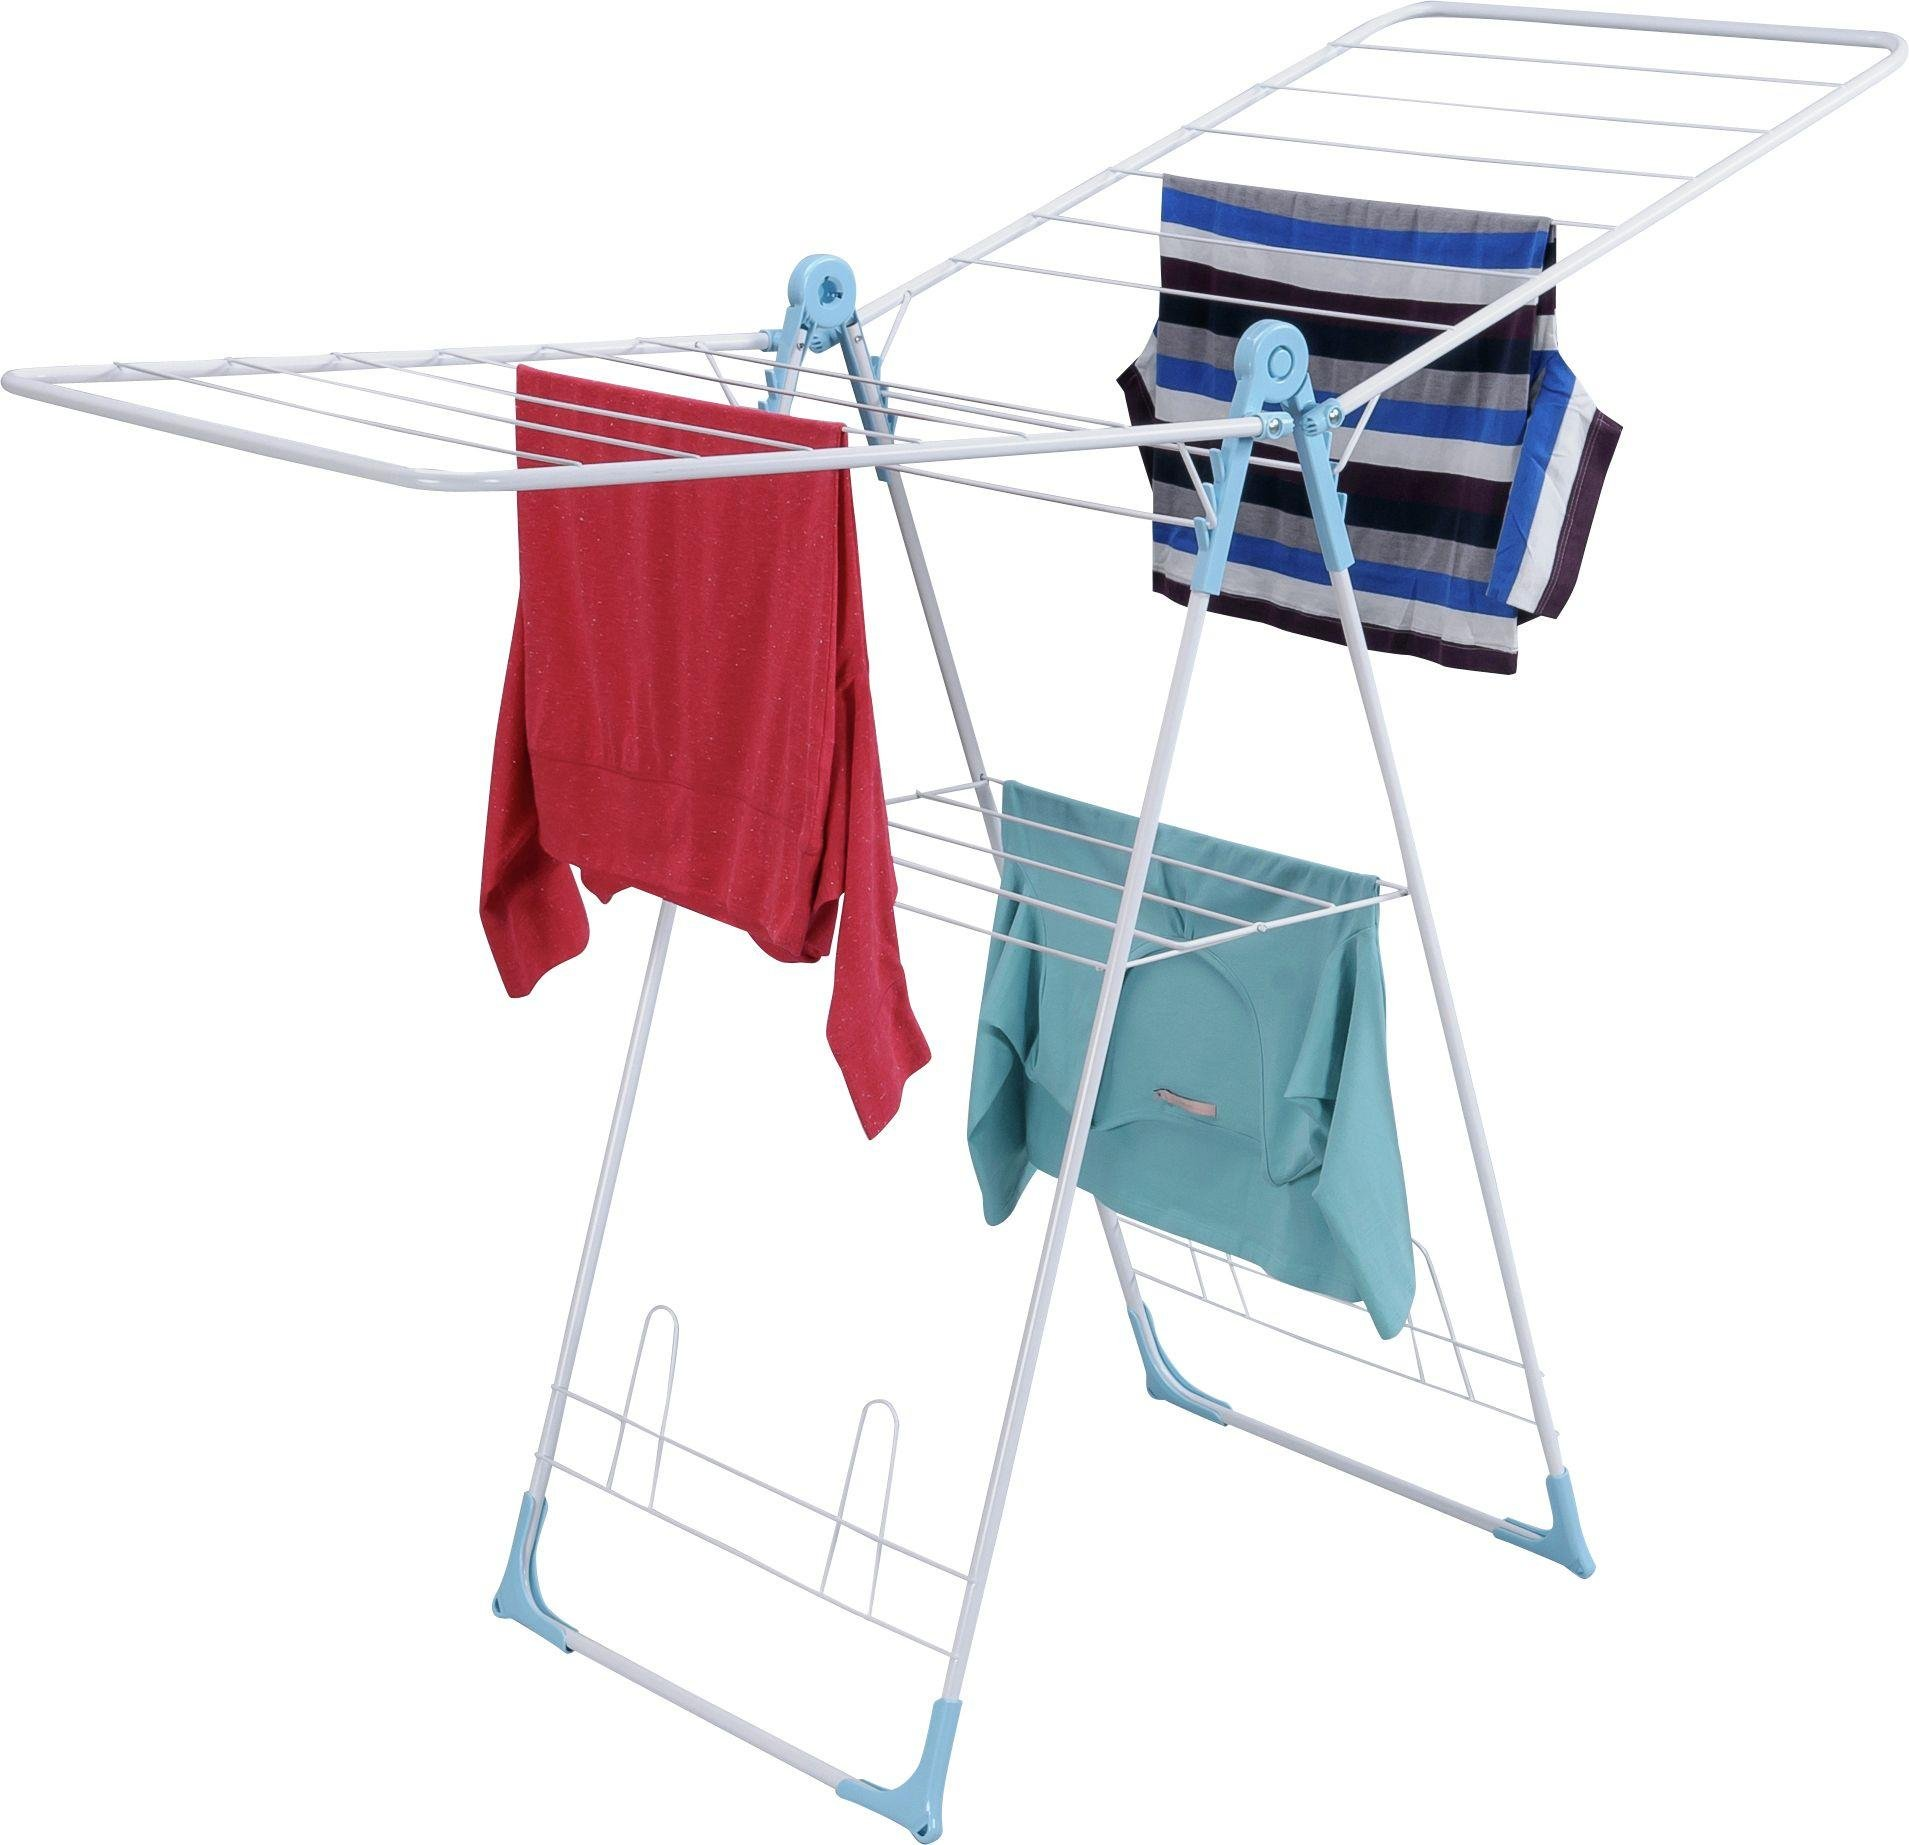 home cross wing 12m indoor clothes airer. Black Bedroom Furniture Sets. Home Design Ideas